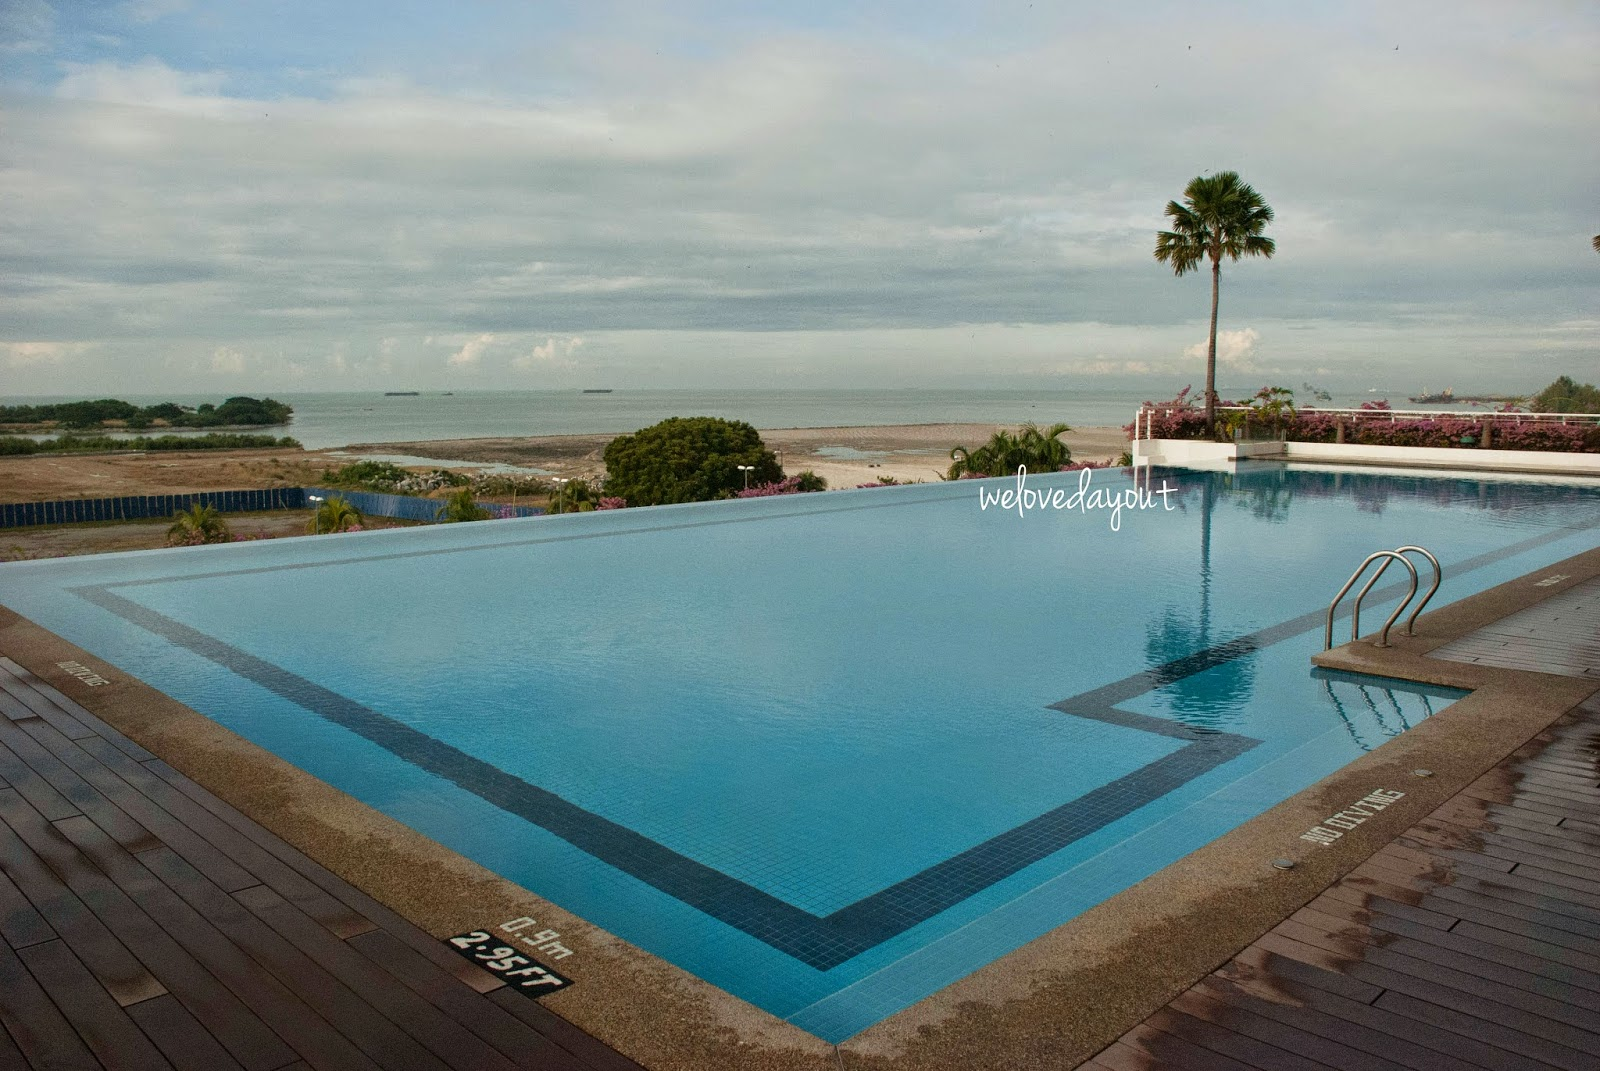 Welovedayout 4d3n malacca self drive holiday trip 2014 - Holiday inn hotels with swimming pool ...